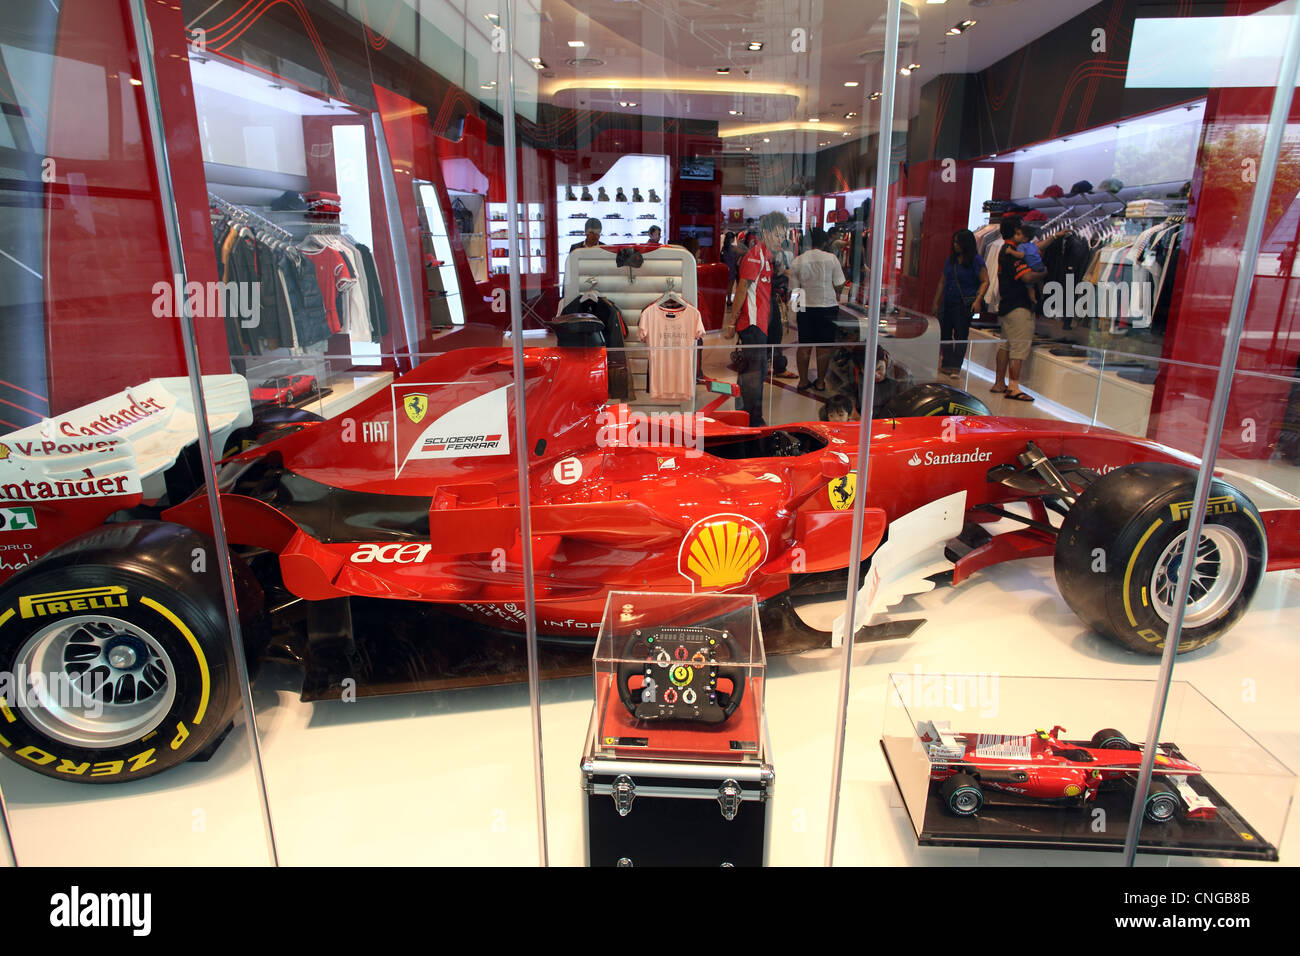 ferrari formula one racing car inside ferrari shop at the marina bay stock photo royalty free. Black Bedroom Furniture Sets. Home Design Ideas